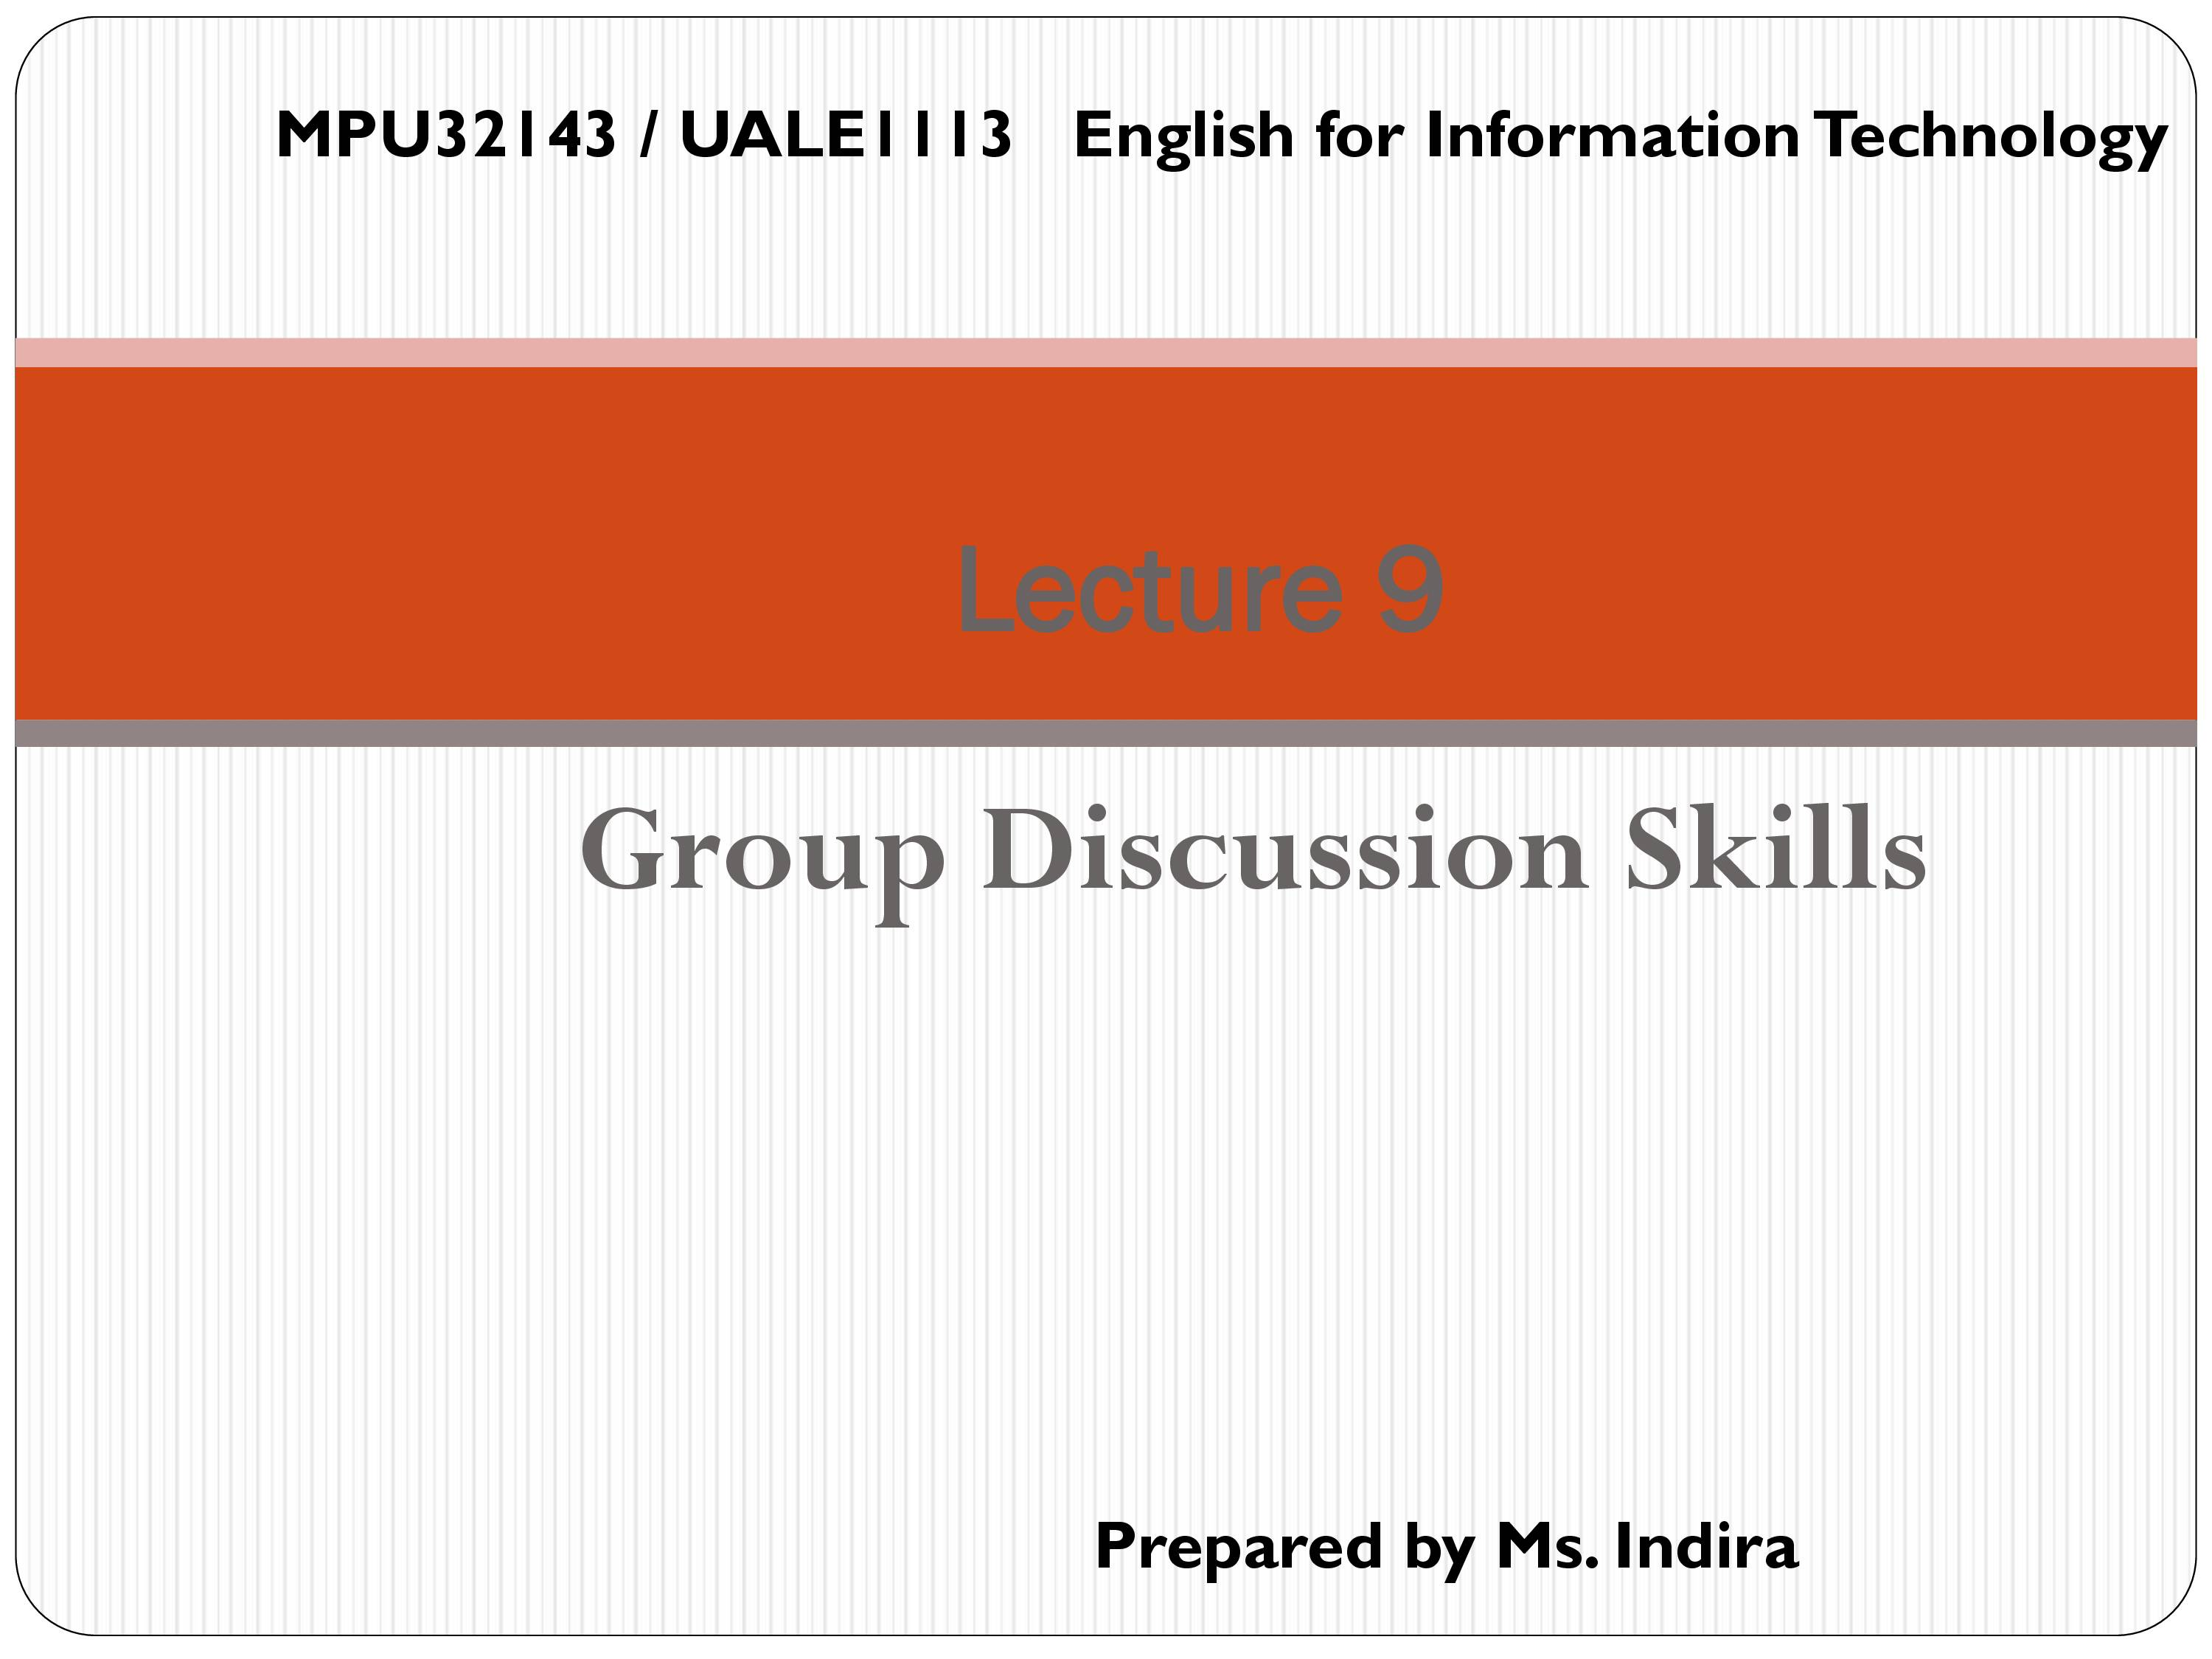 PPT On Group Discussion Skills